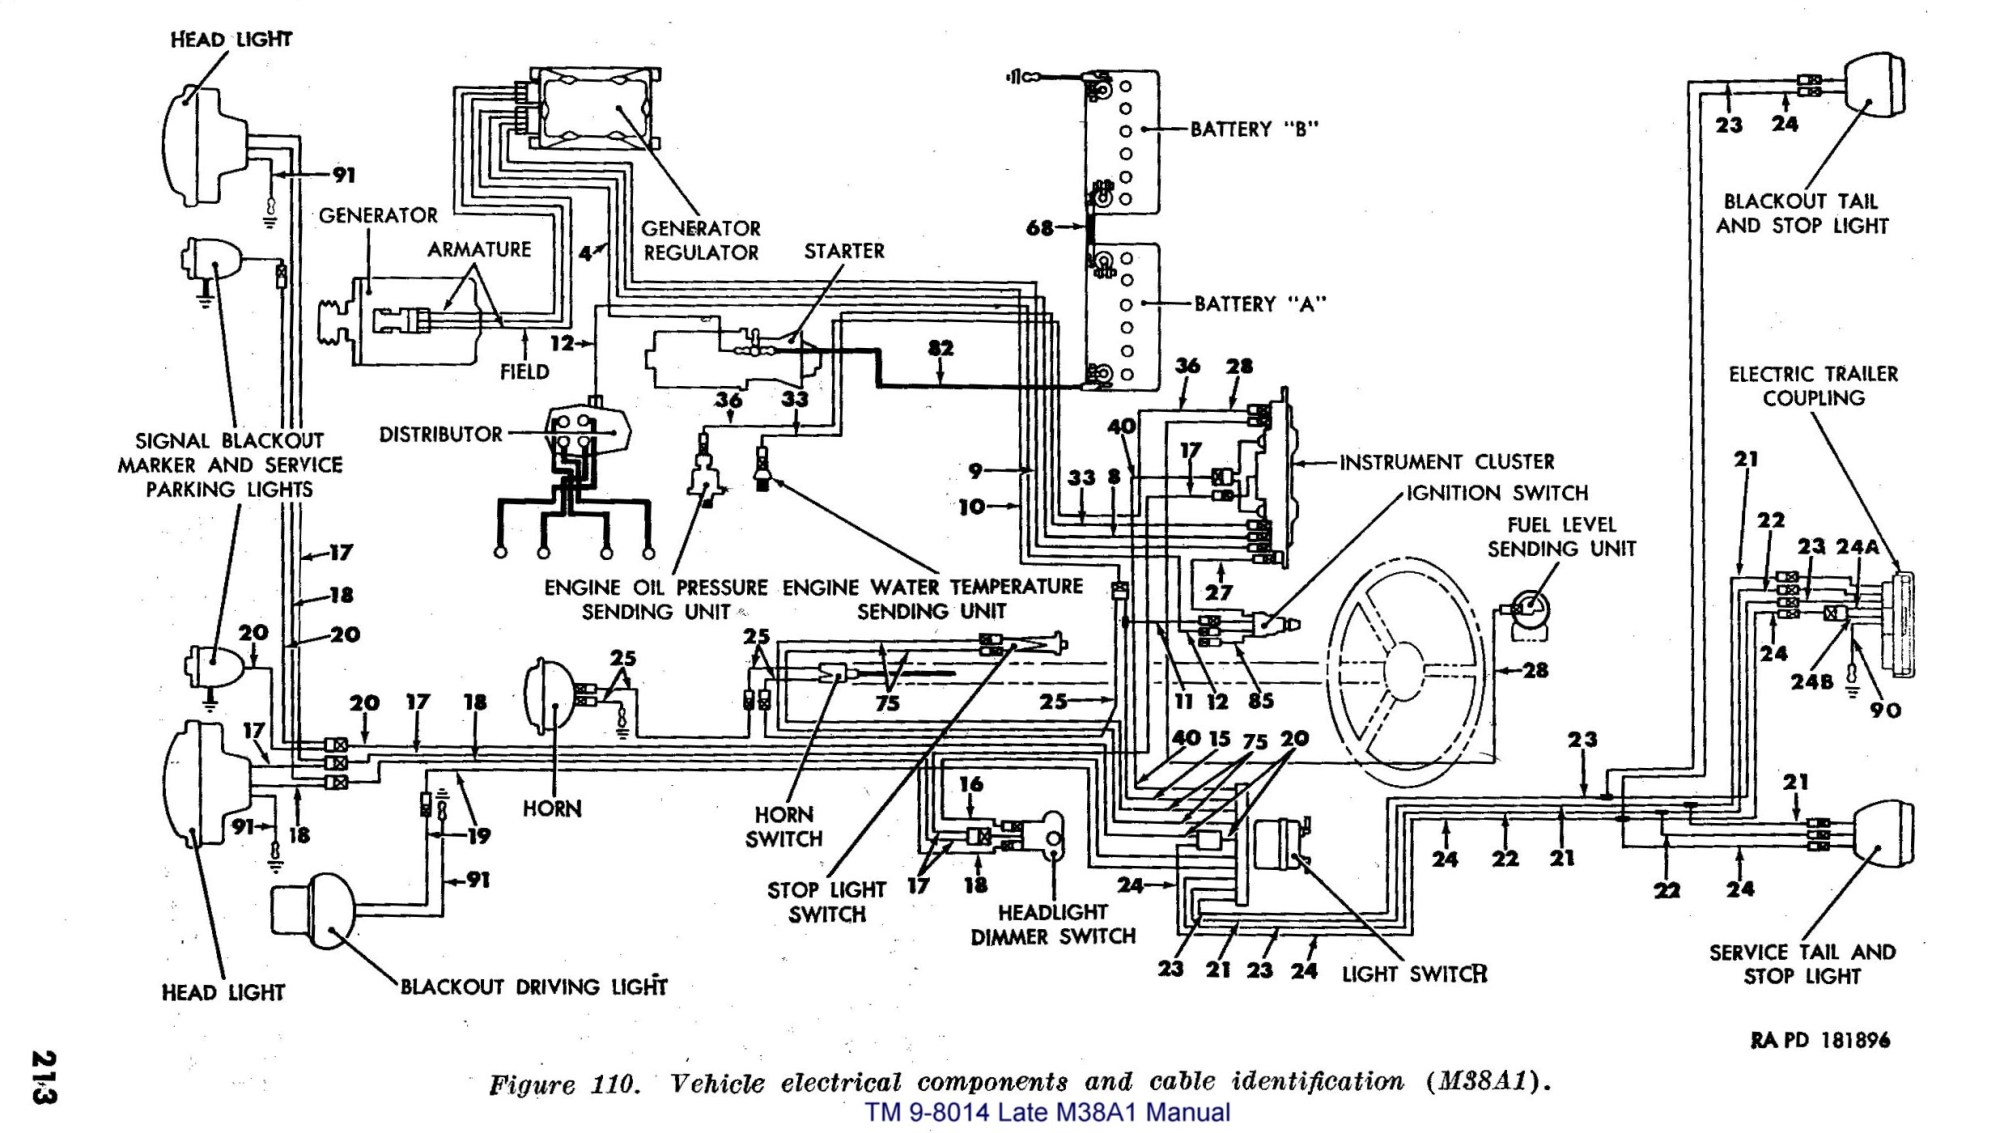 hight resolution of cj3b wiring diagram cj3 wiring diagram wiring diagram odicis 1953 willys wiring diagram cj3b wiring